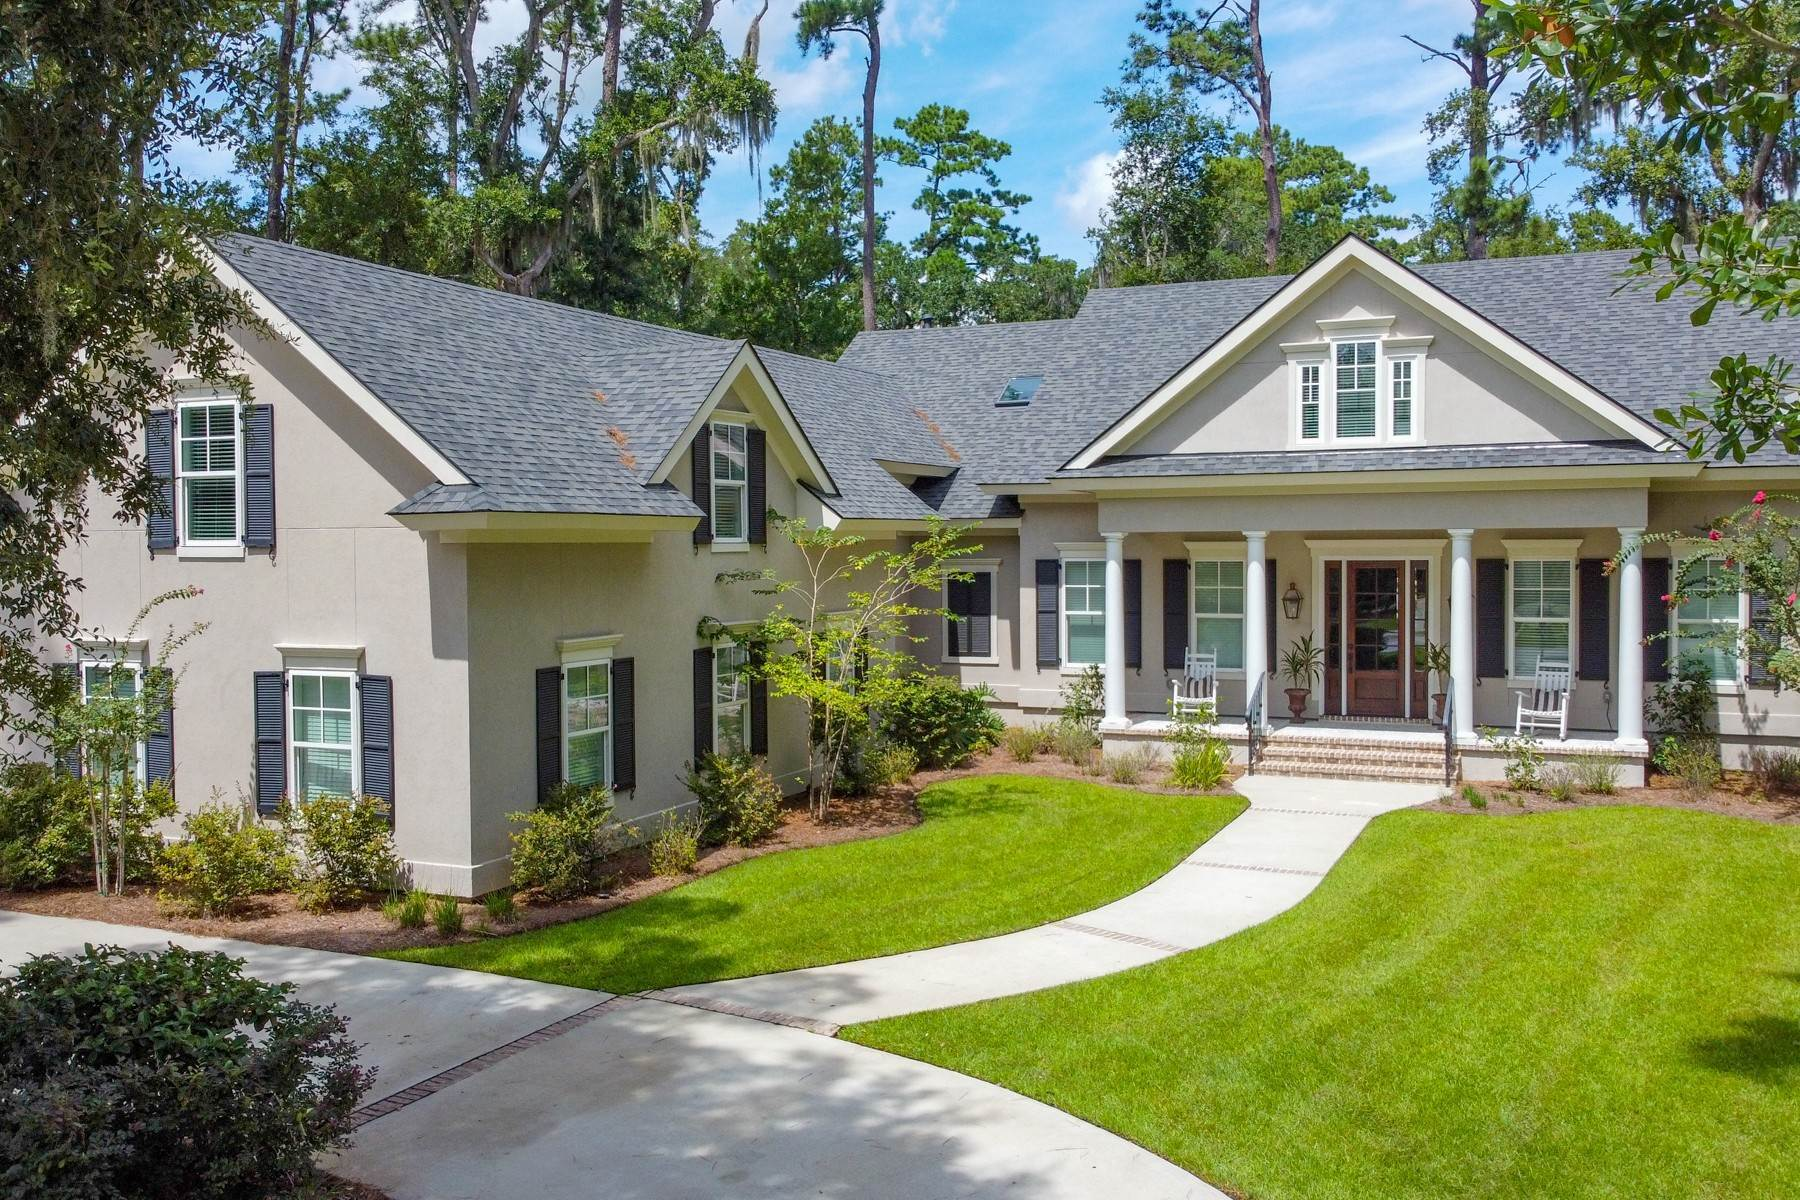 49. Single Family Homes for Sale at 73 Waterway Drive Skidaway Island, Georgia 31411 United States